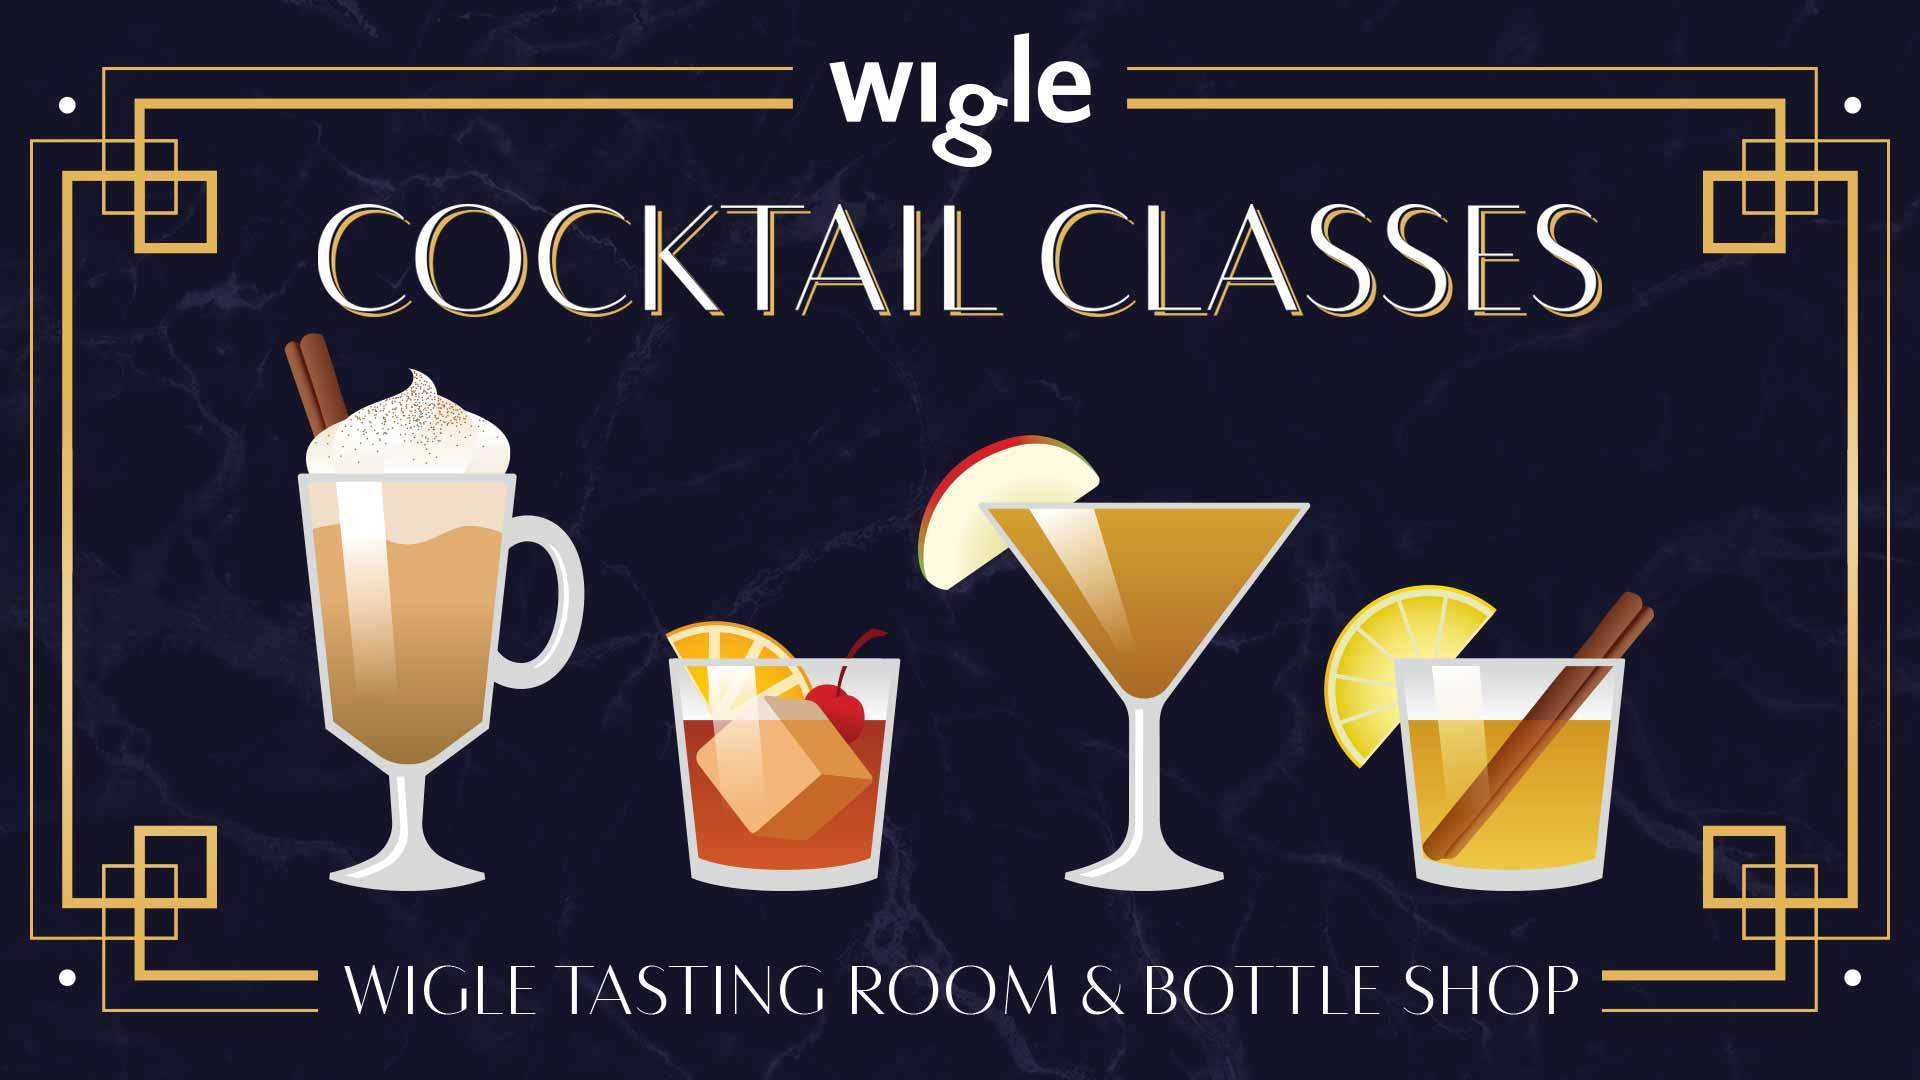 Monday, October 21st - Pumpkin Spice Cocktail Class - Wigle. Tasting Room and Bottle Shop Downtown